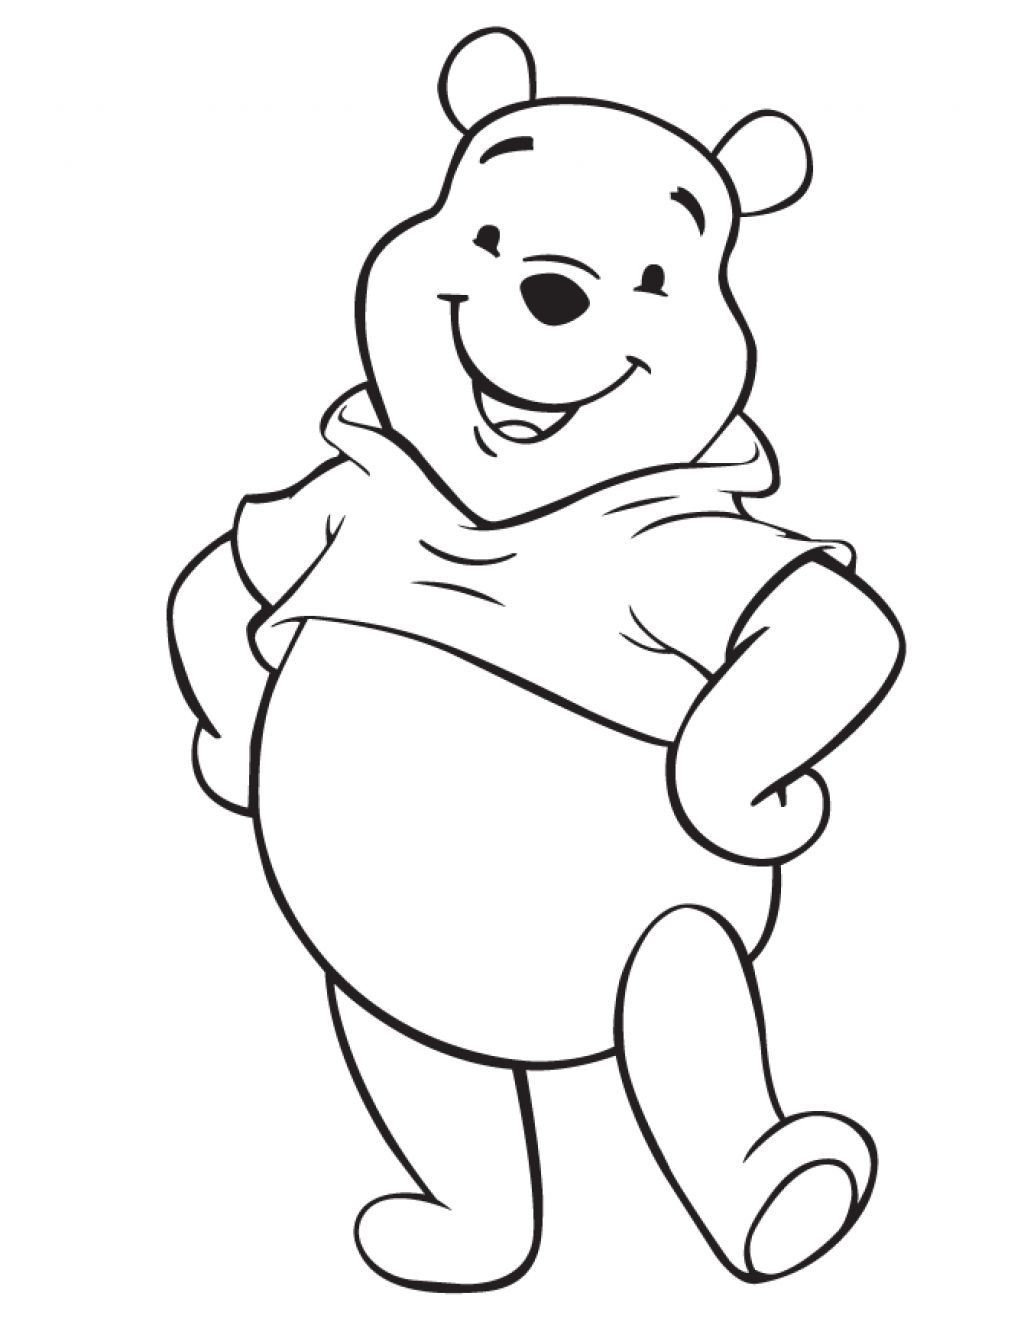 Disney Characters Coloring Pages Easy Baby disney cartoon ... | free printable coloring pages baby disney characters